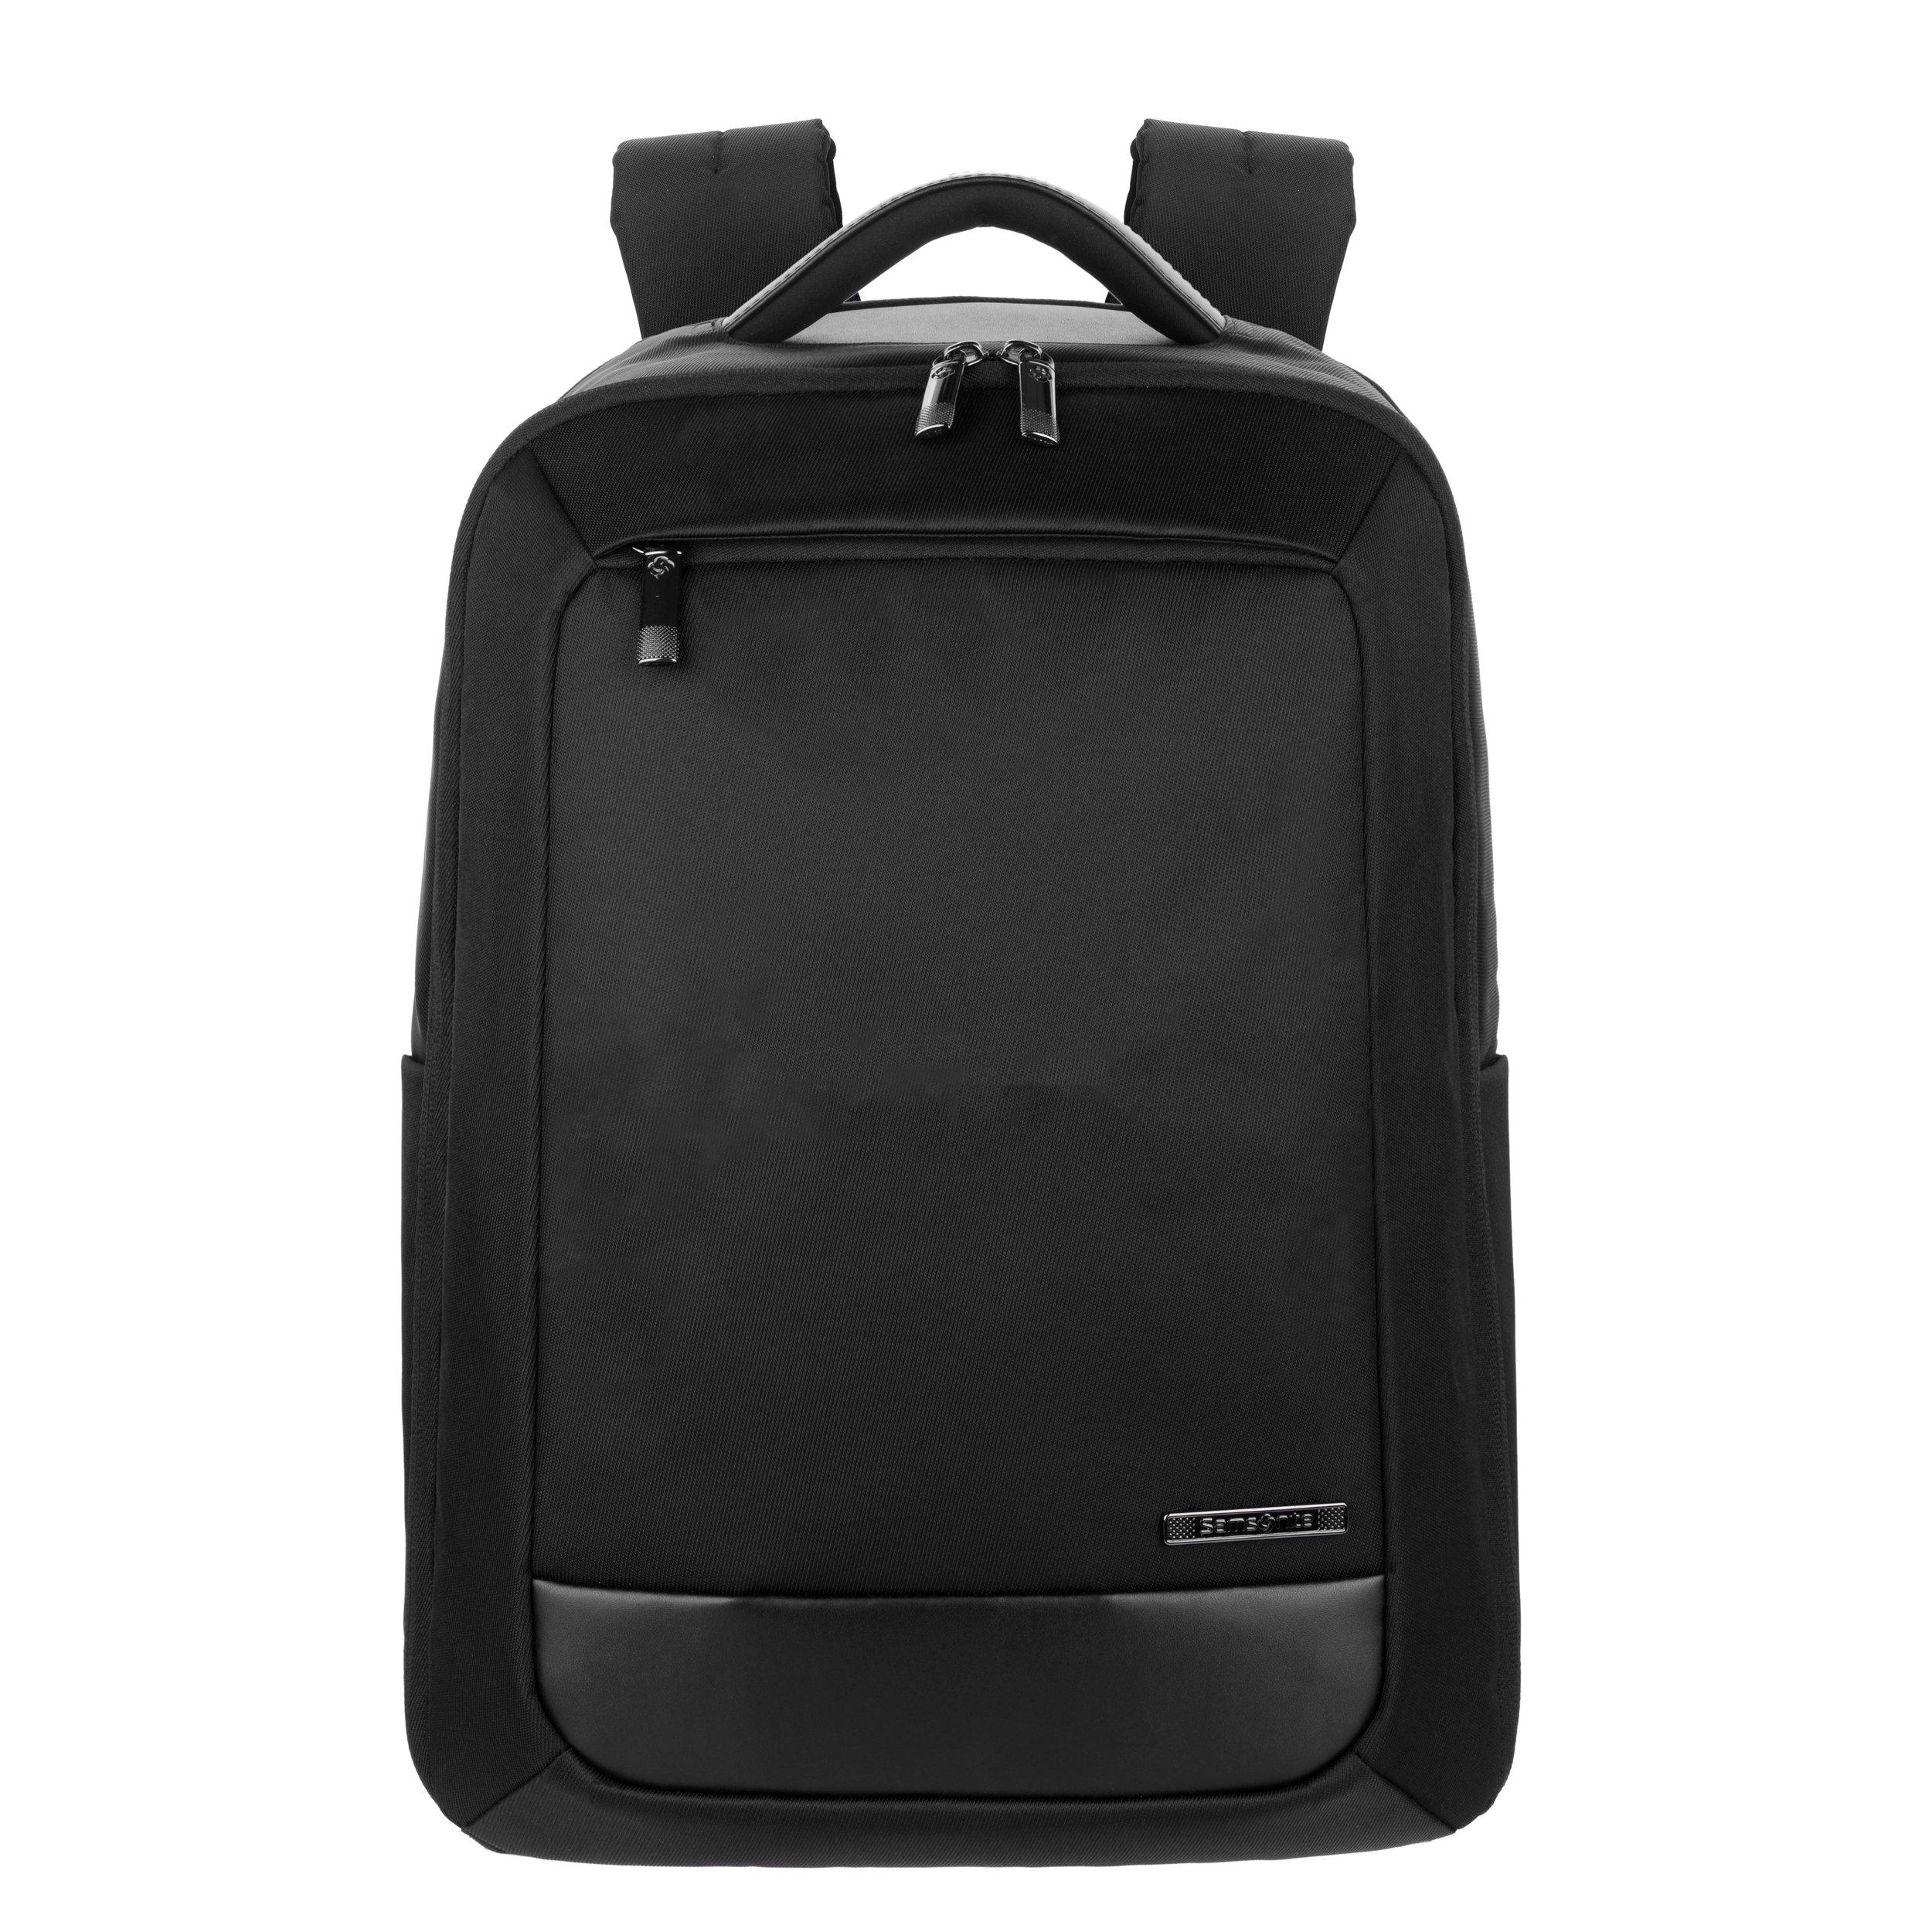 Durable yet sleek twill body material with genuine leather accents.